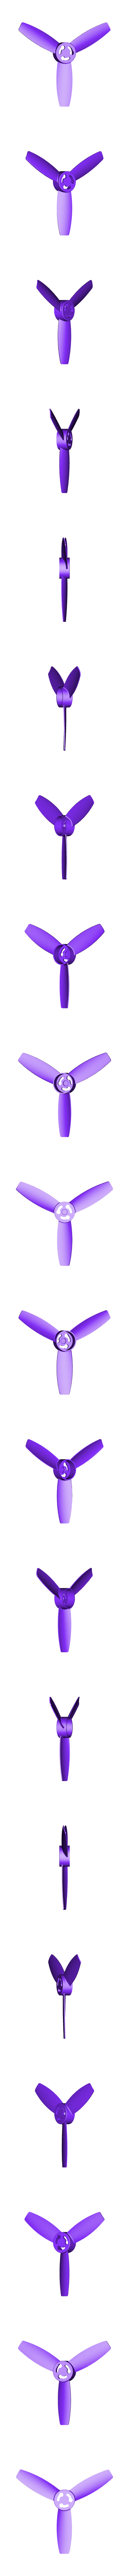 Propeller_with_hole.stl Download free STL file Replacement propellers for the Parrot Bebop • 3D print model, Alessandro_Palma